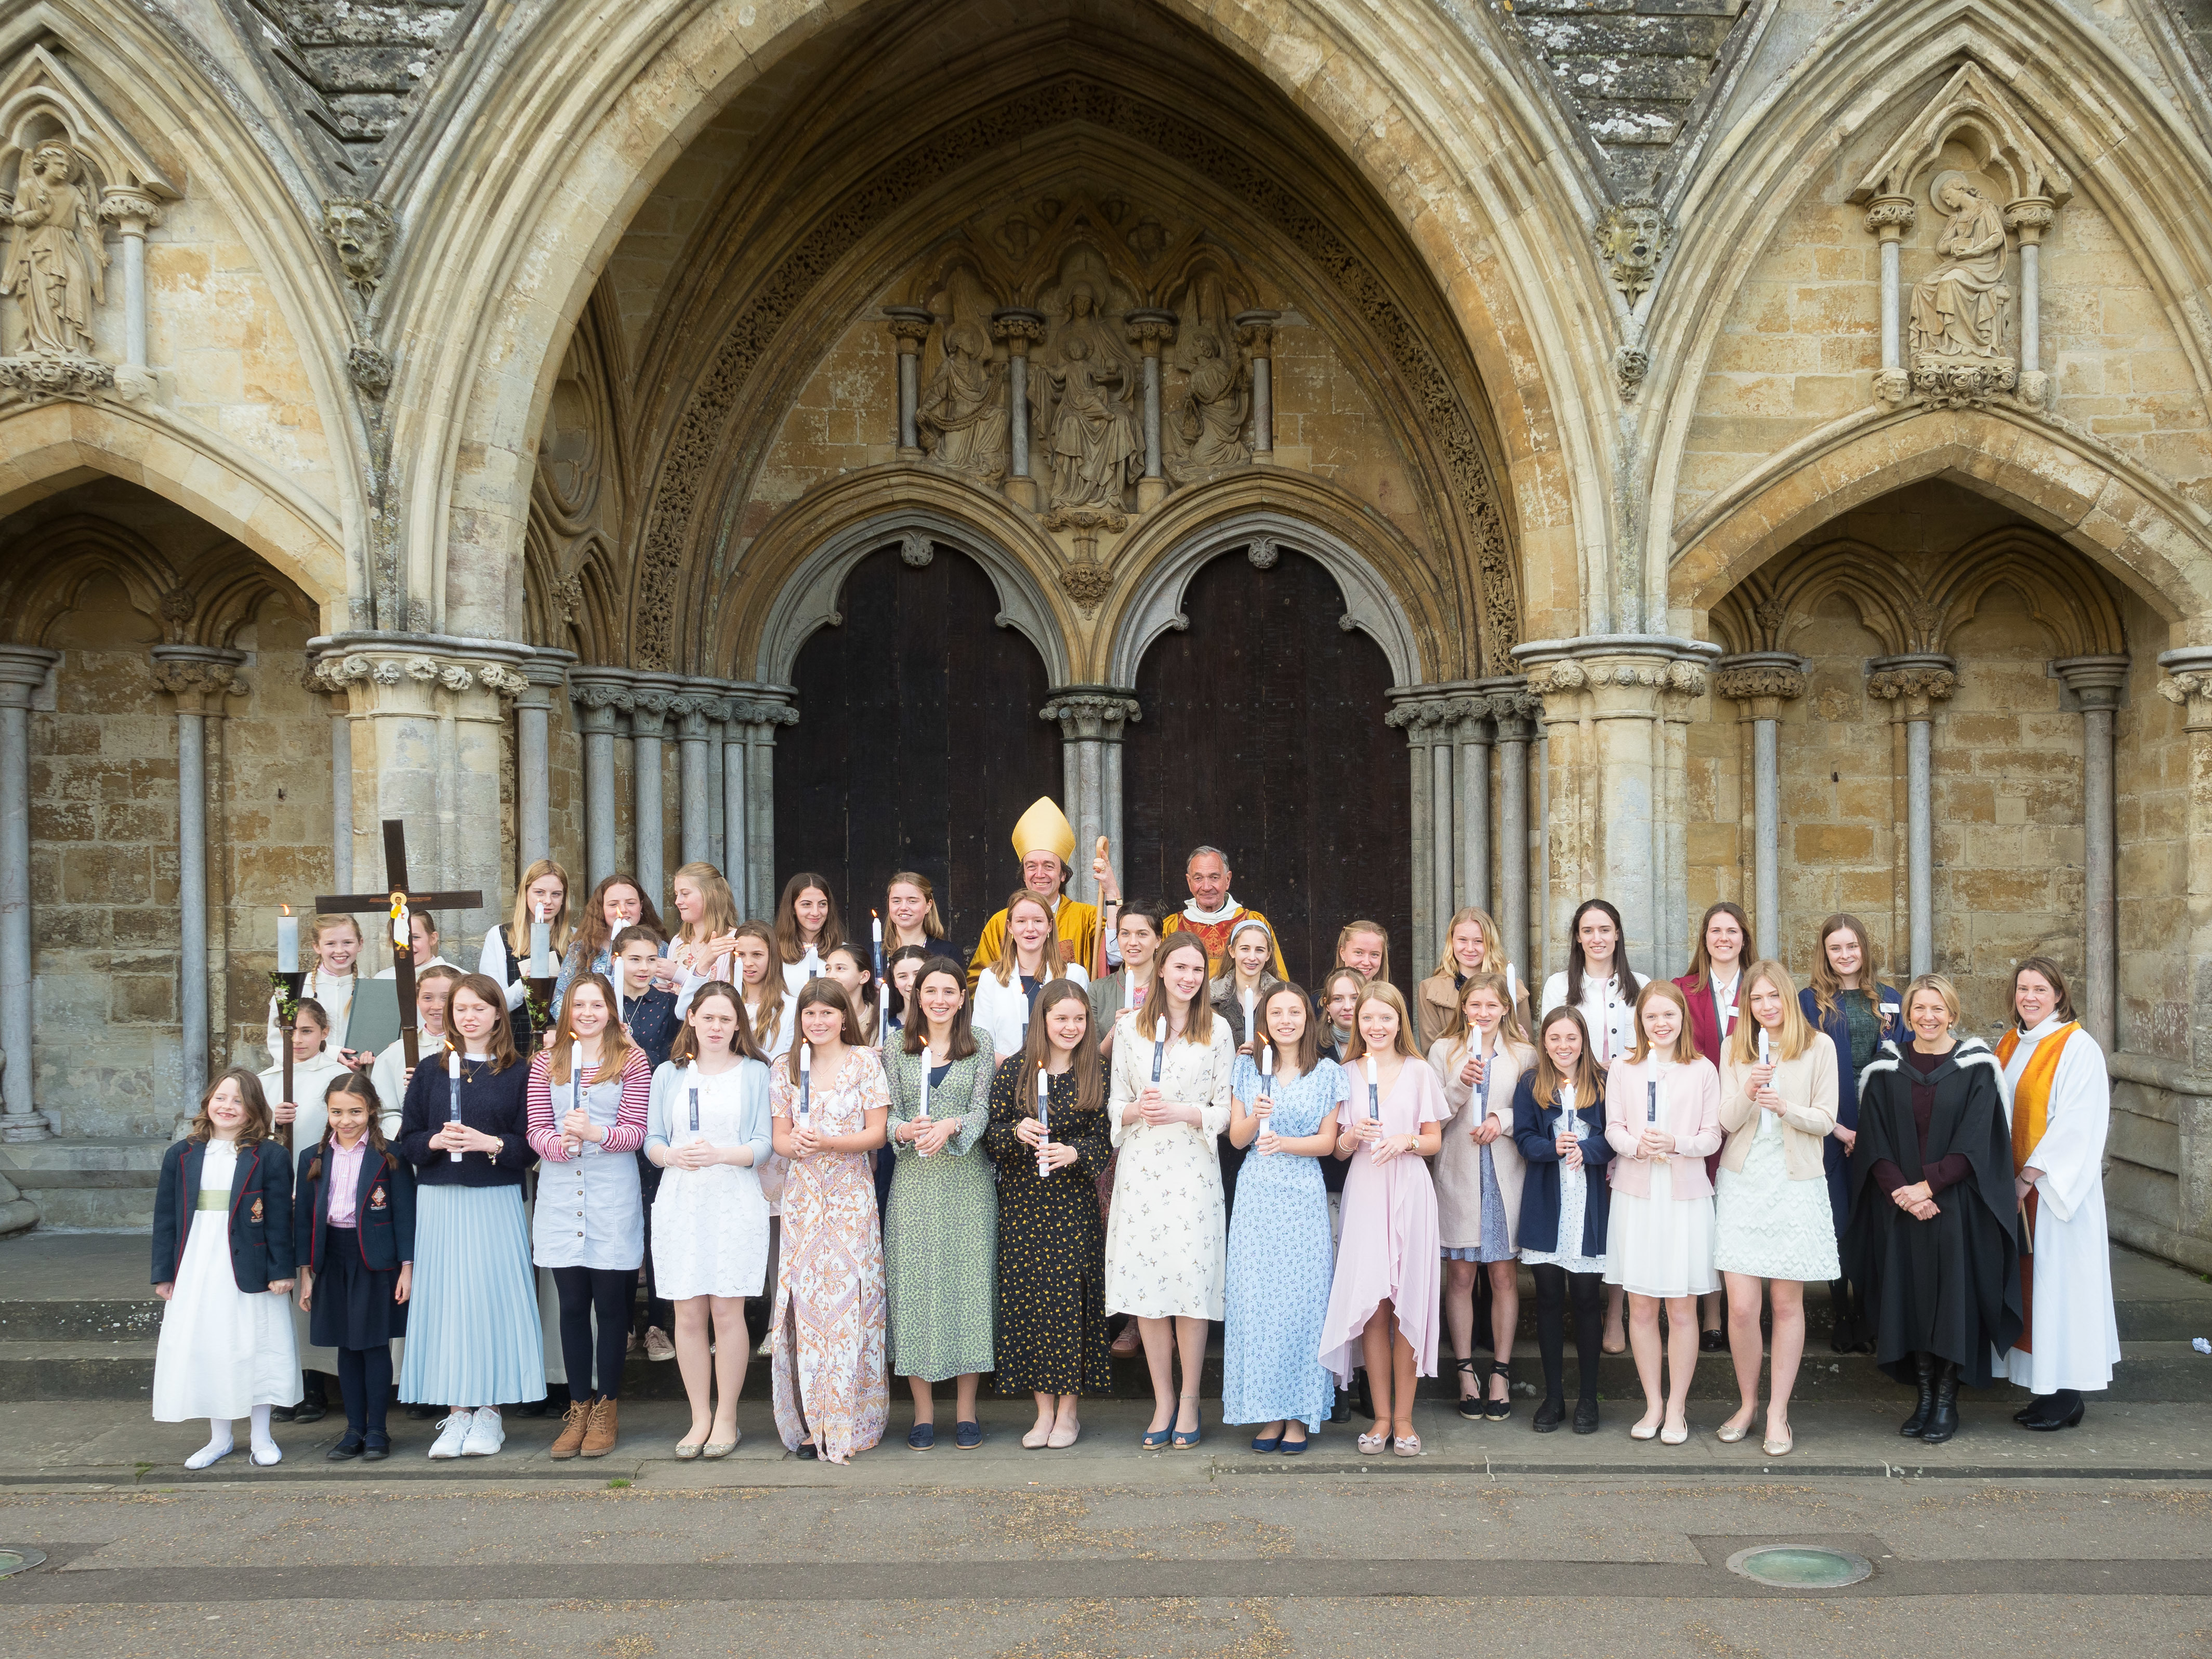 257 3Rd April2019 Godolphin School Service Photo By Ash Mills